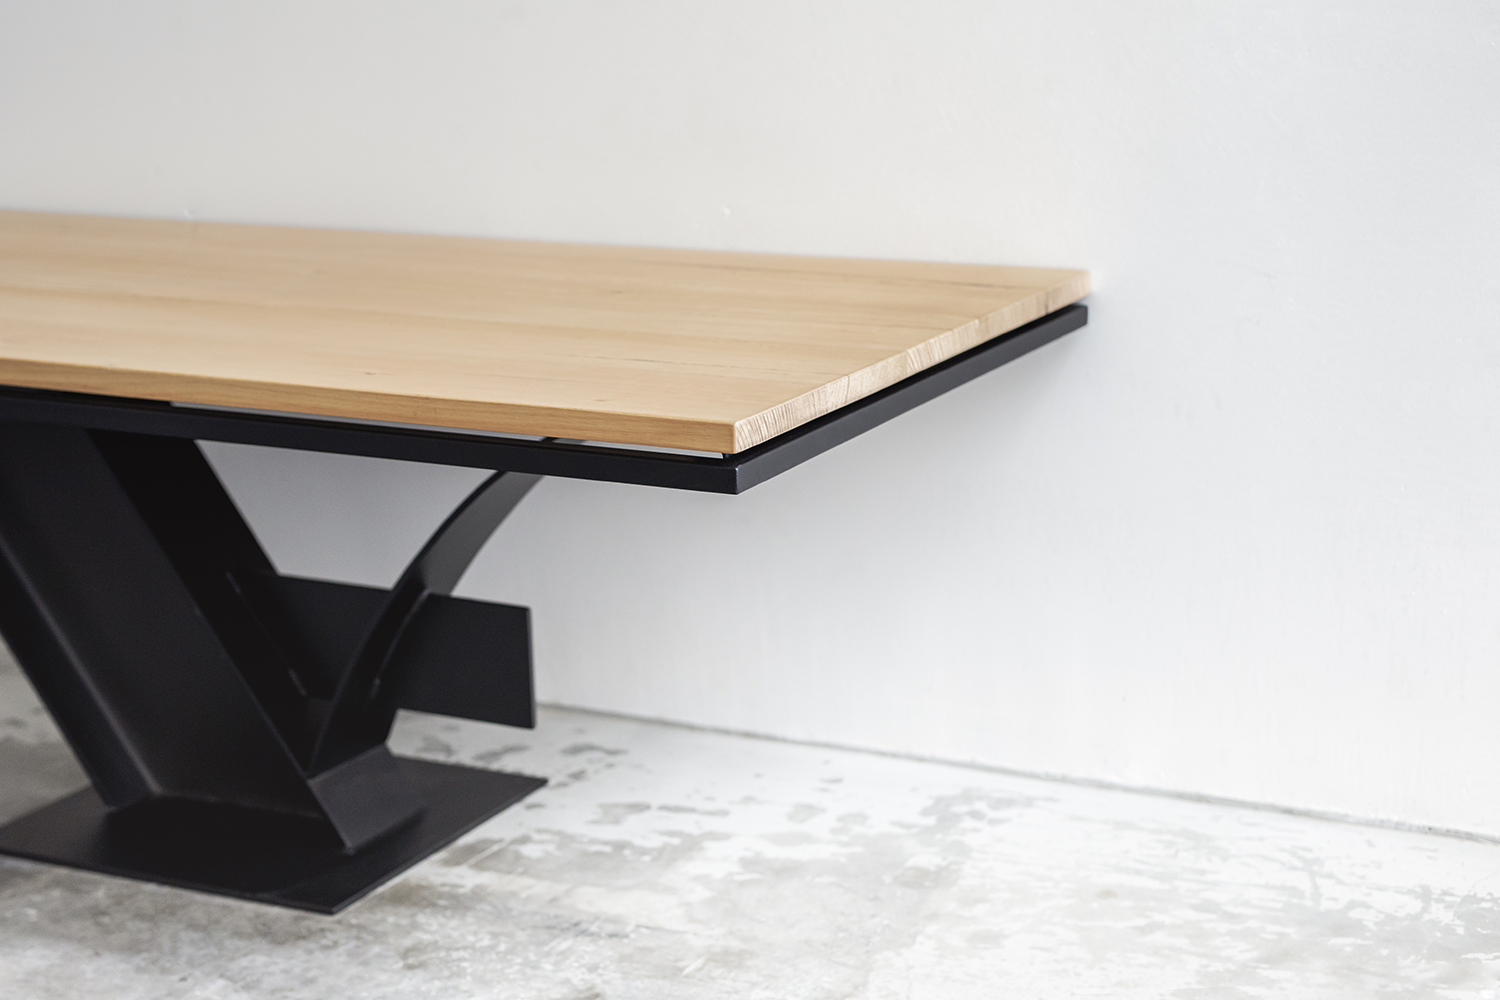 Samolaco Canter Levered Table